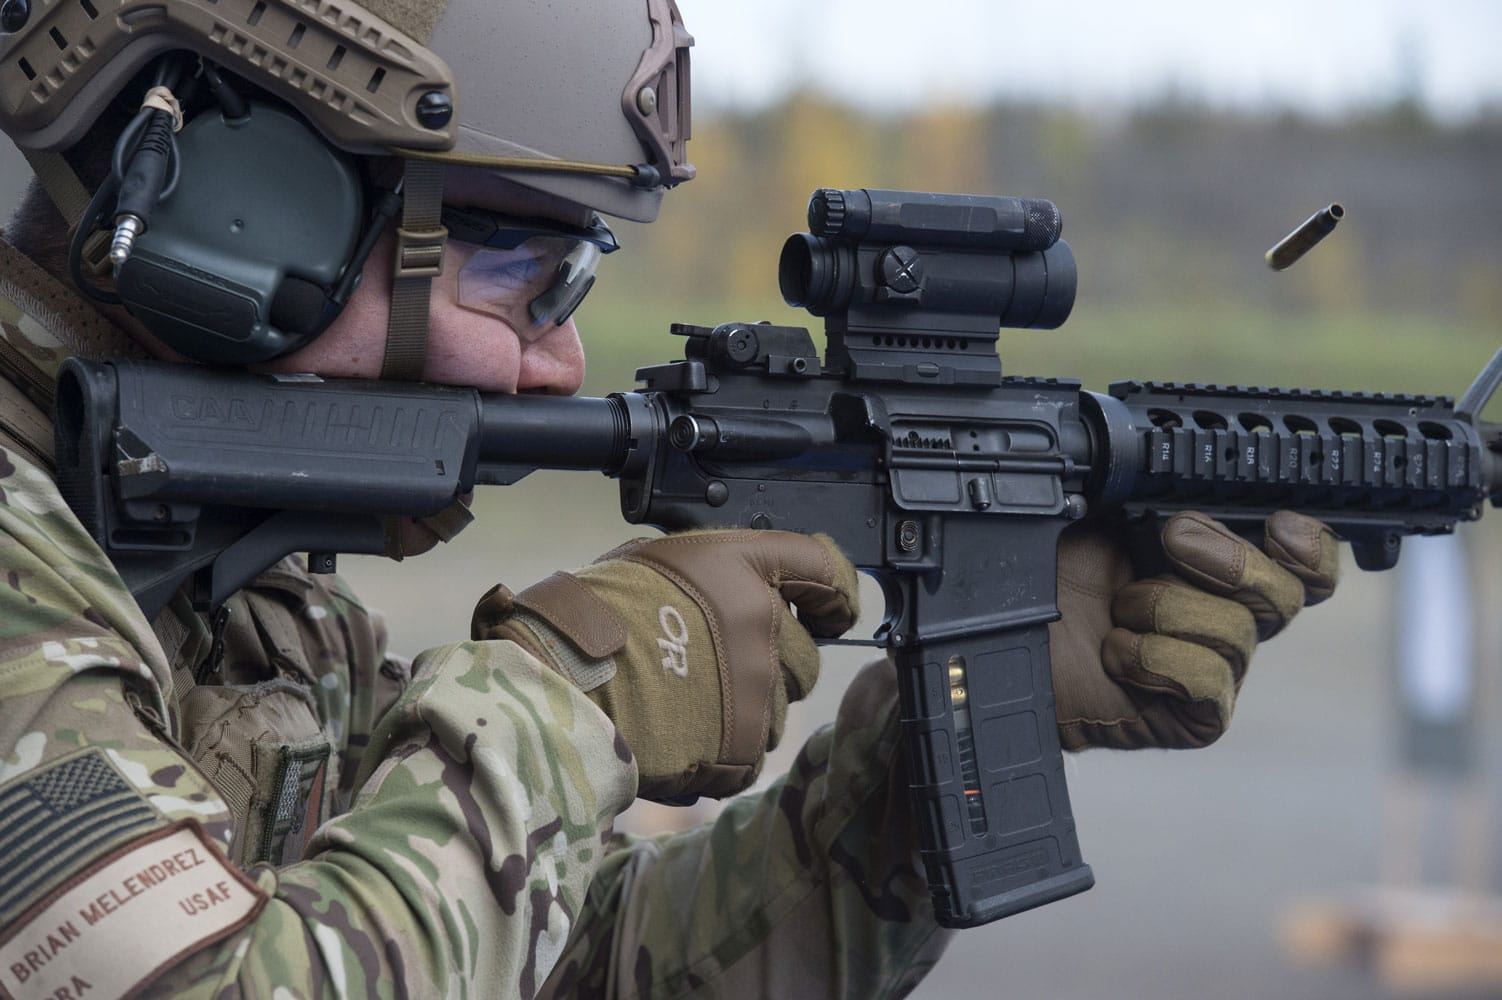 U.S. Air Force Senior Airman Brian Melendrez, a tactical air control party specialist assigned to the 3rd Air Support Operations Squadron, fires a M4 carbine during live-fire sustainment training.